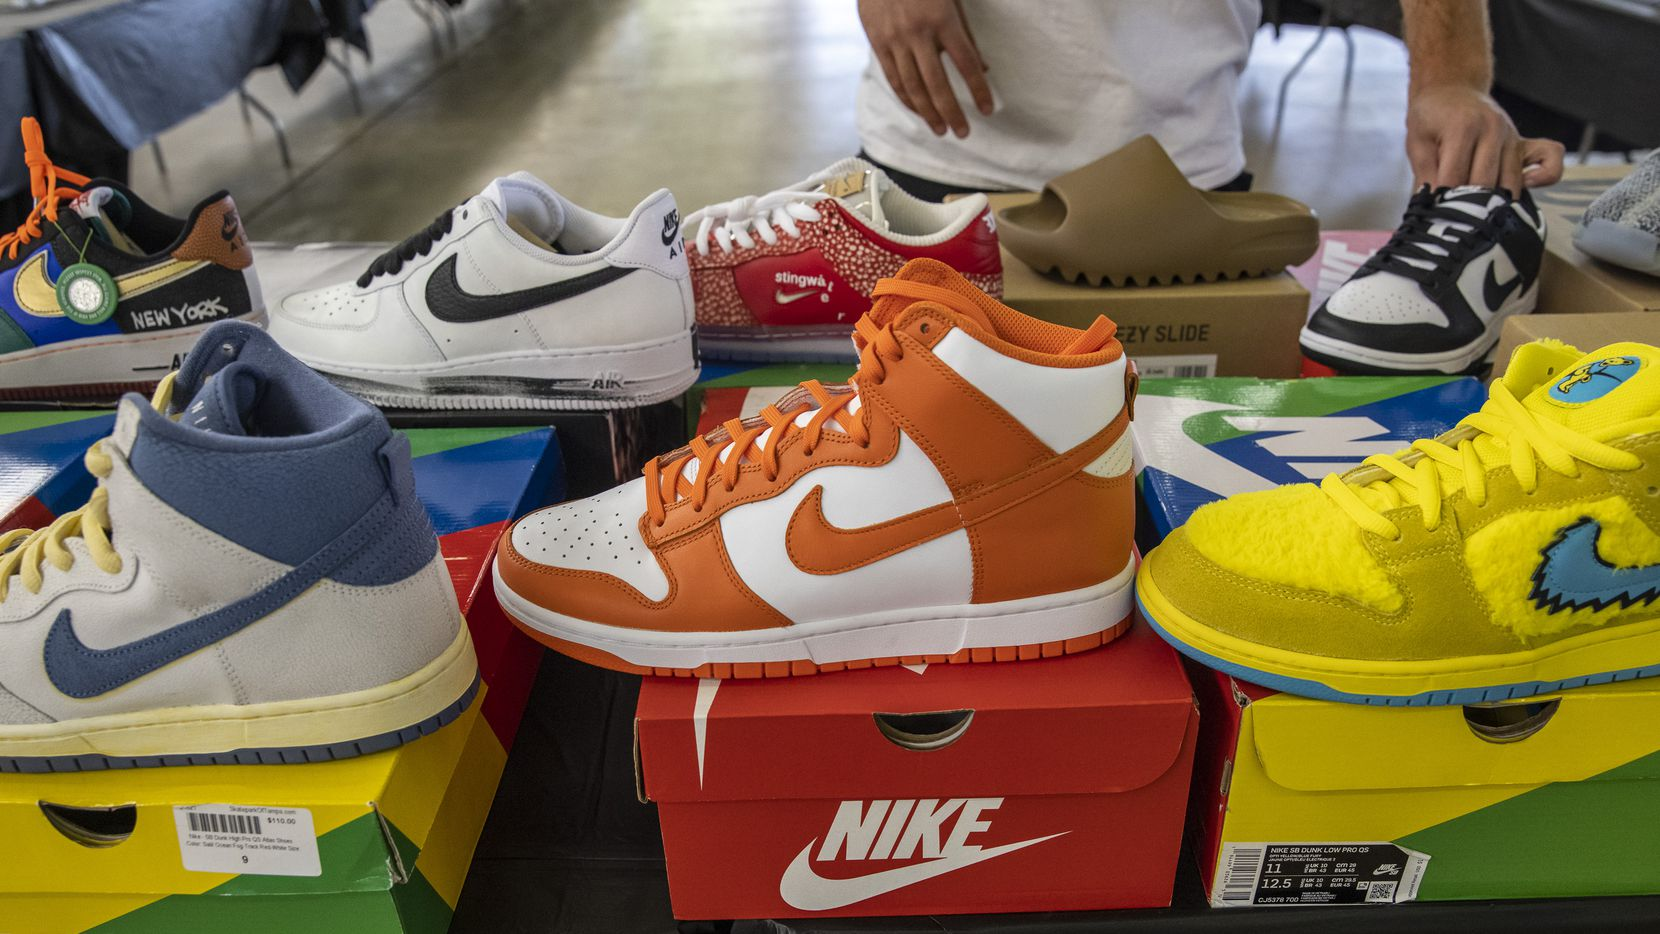 """Plugged In ORL co-owner Matthew Caraballo handles and reviews inventory in preparation for Sneaker Con this weekend at Market Hall. """"There's going to be so many people here that got into the game when they had nothing to do,"""" Kowatli said about the pandemic's effect on sneaker enthusiasm."""